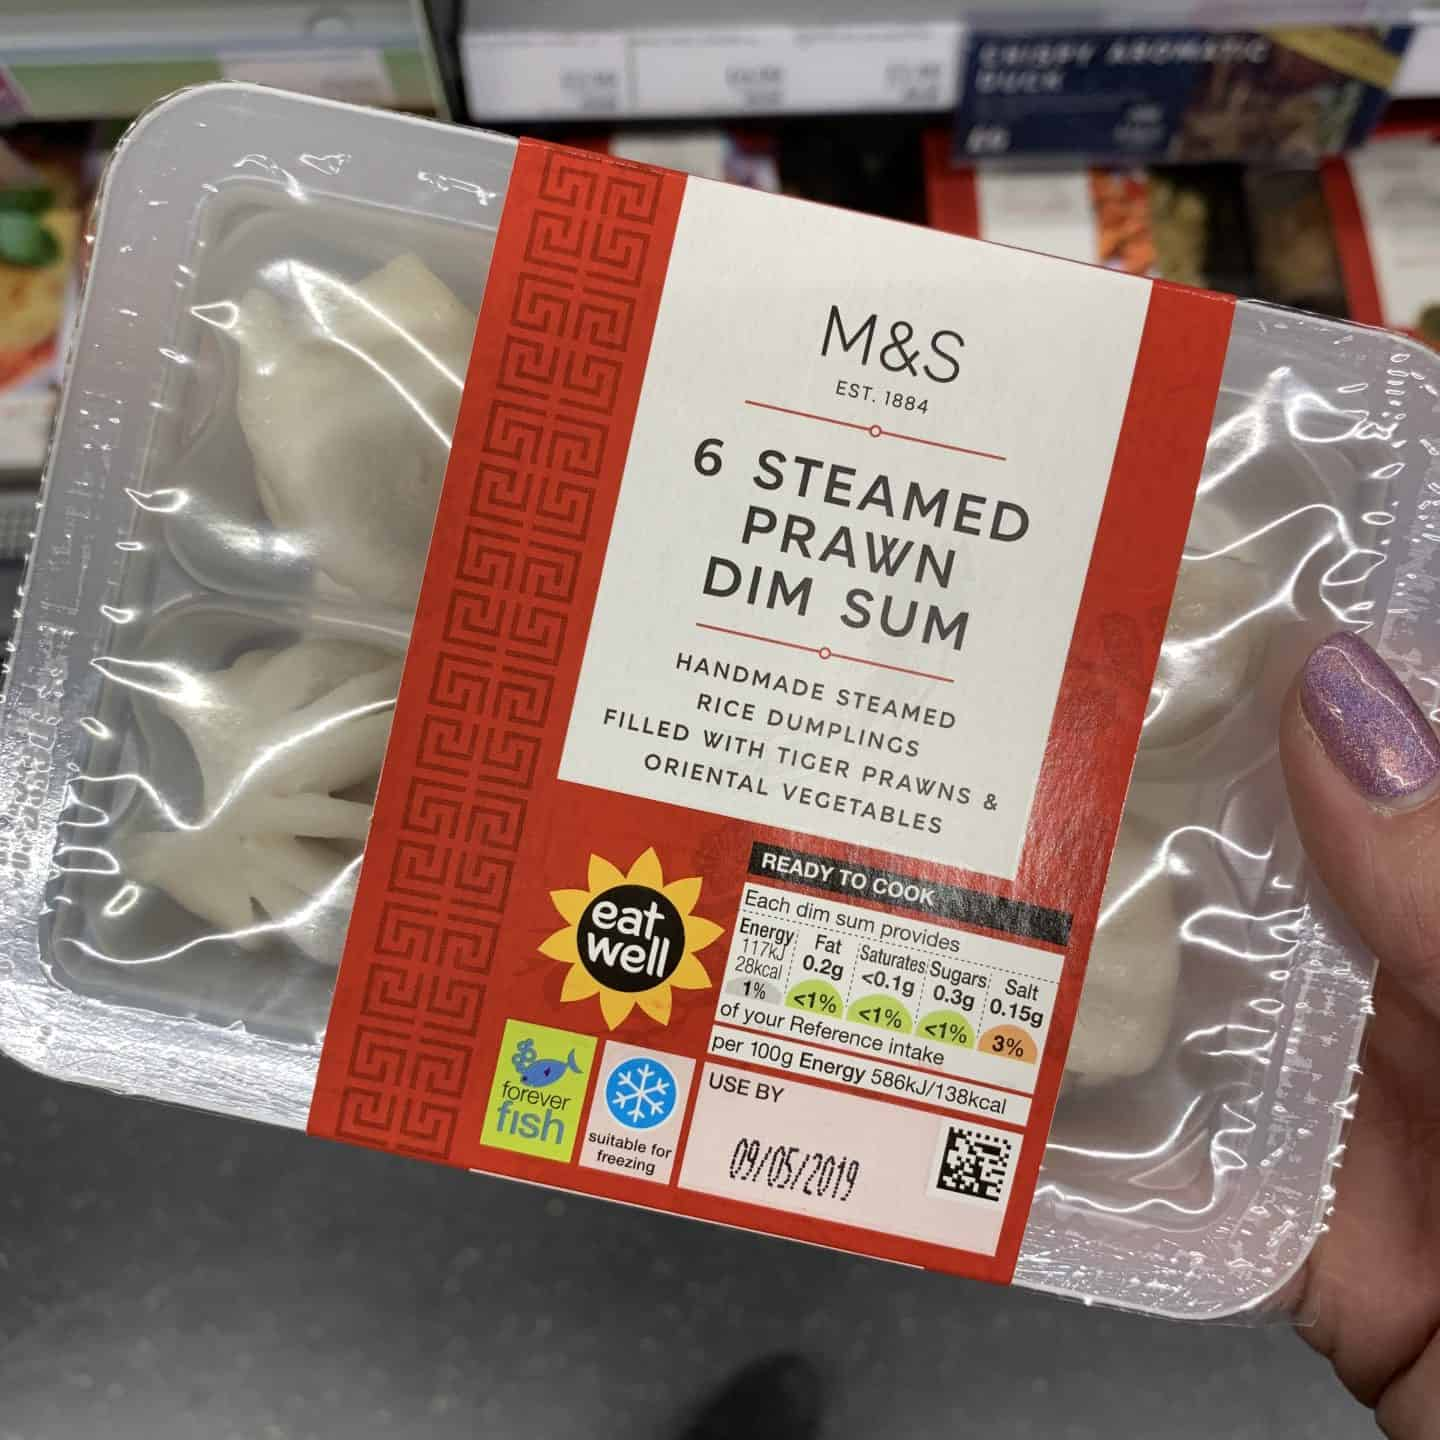 marks and spencers steamed prawn dim sum gluten free